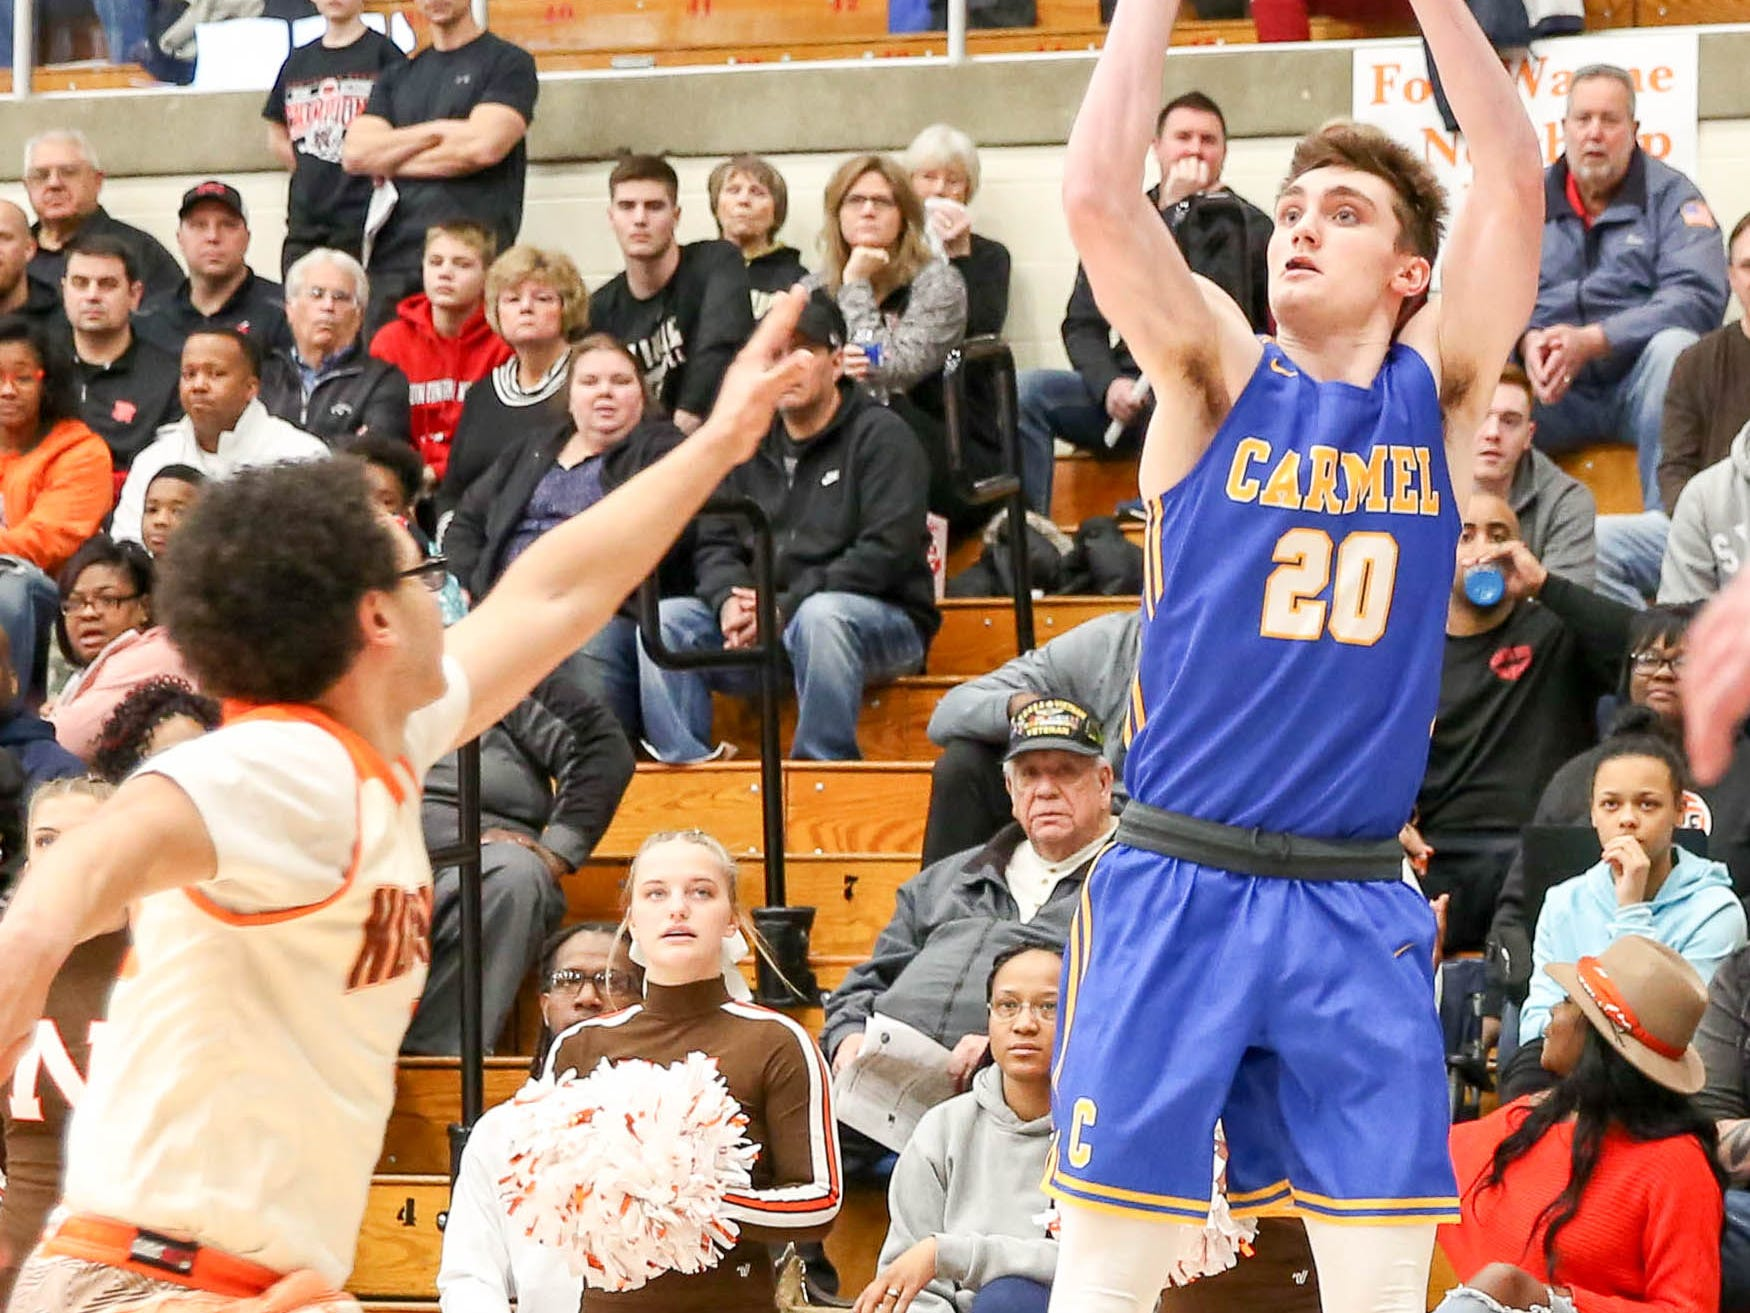 Carmel's Andrew Owens (20) with the 3 point shot during the first half of Carmel vs. Fort Wayne Northrop High School in the IHSAA Varsity Boys Regional Semifinals held at Logansport High School, March 9, 2019.